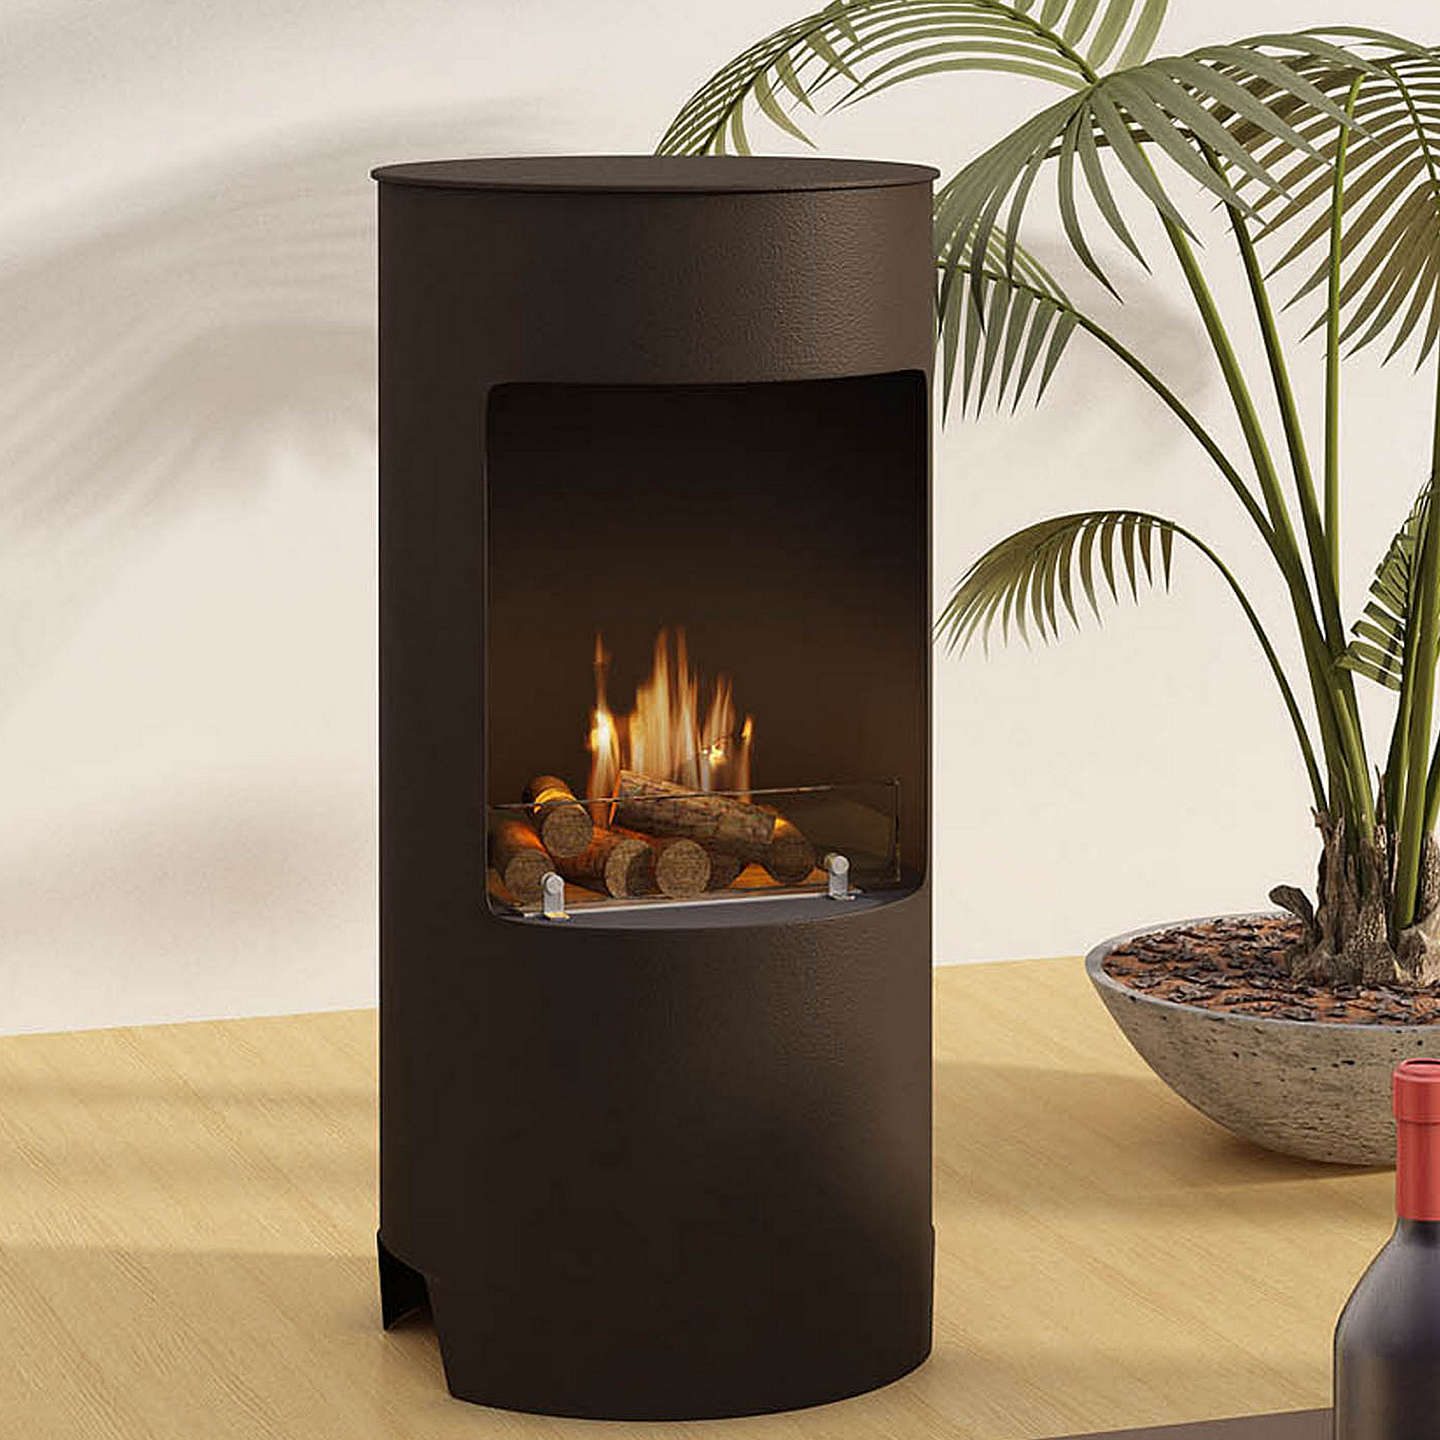 BuyImagin Stow Bioethanol Fireplace, Black Online at johnlewis.com